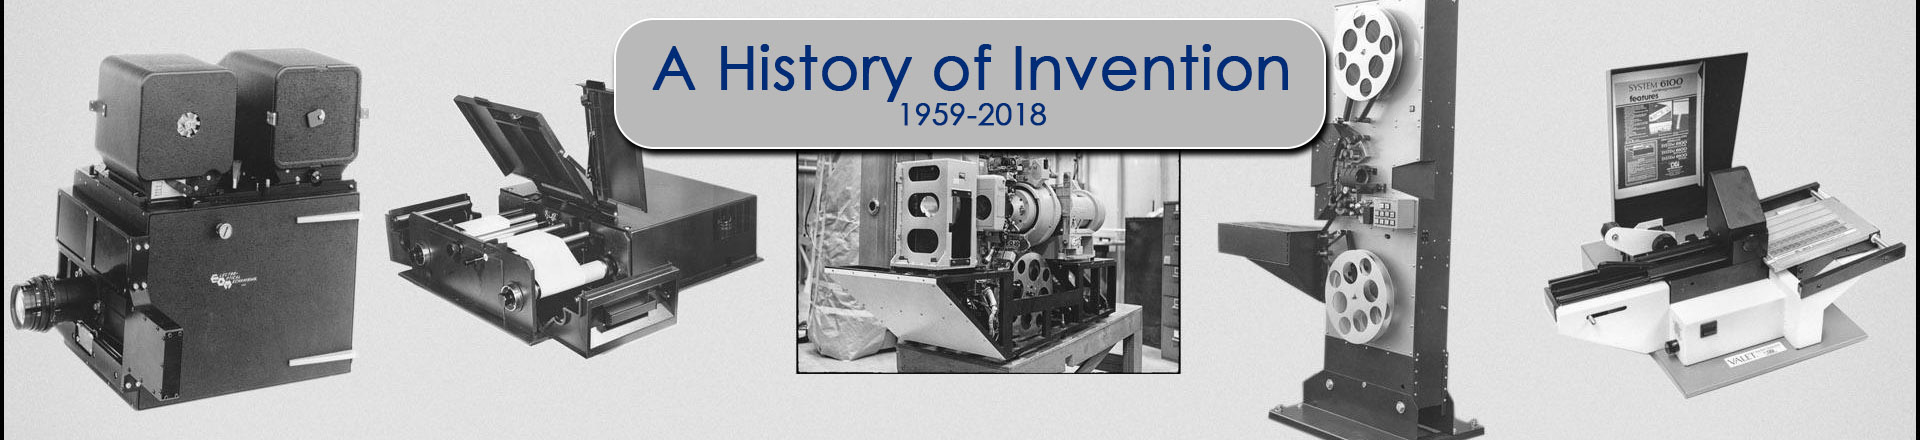 Digital Check history of invention